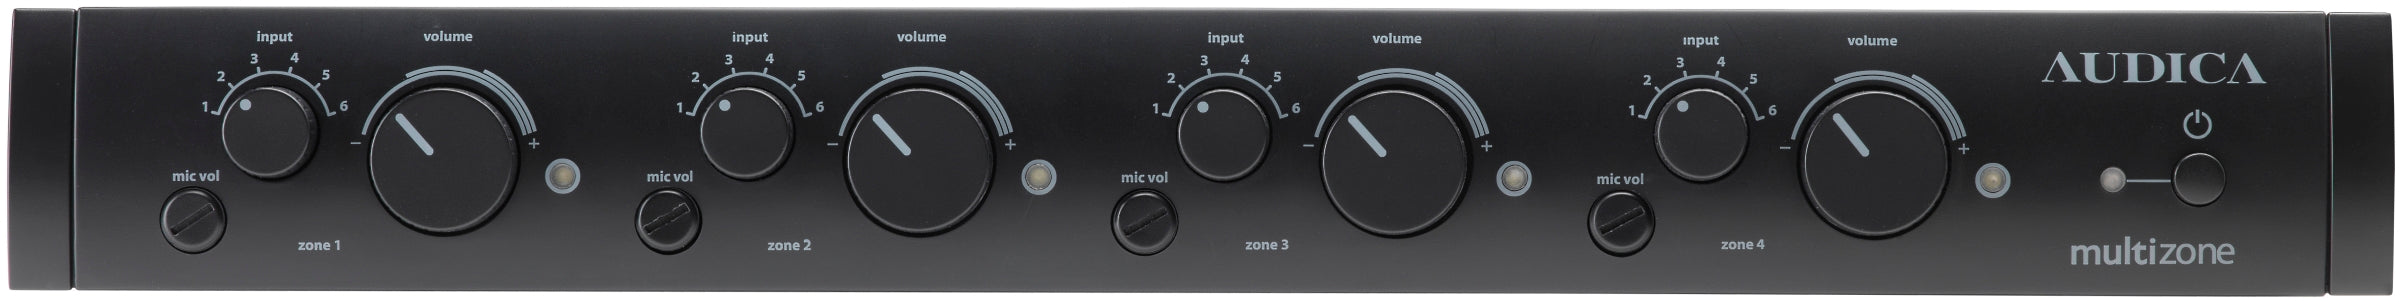 Audica MULTIzone 4-Zone Stereo Mixer